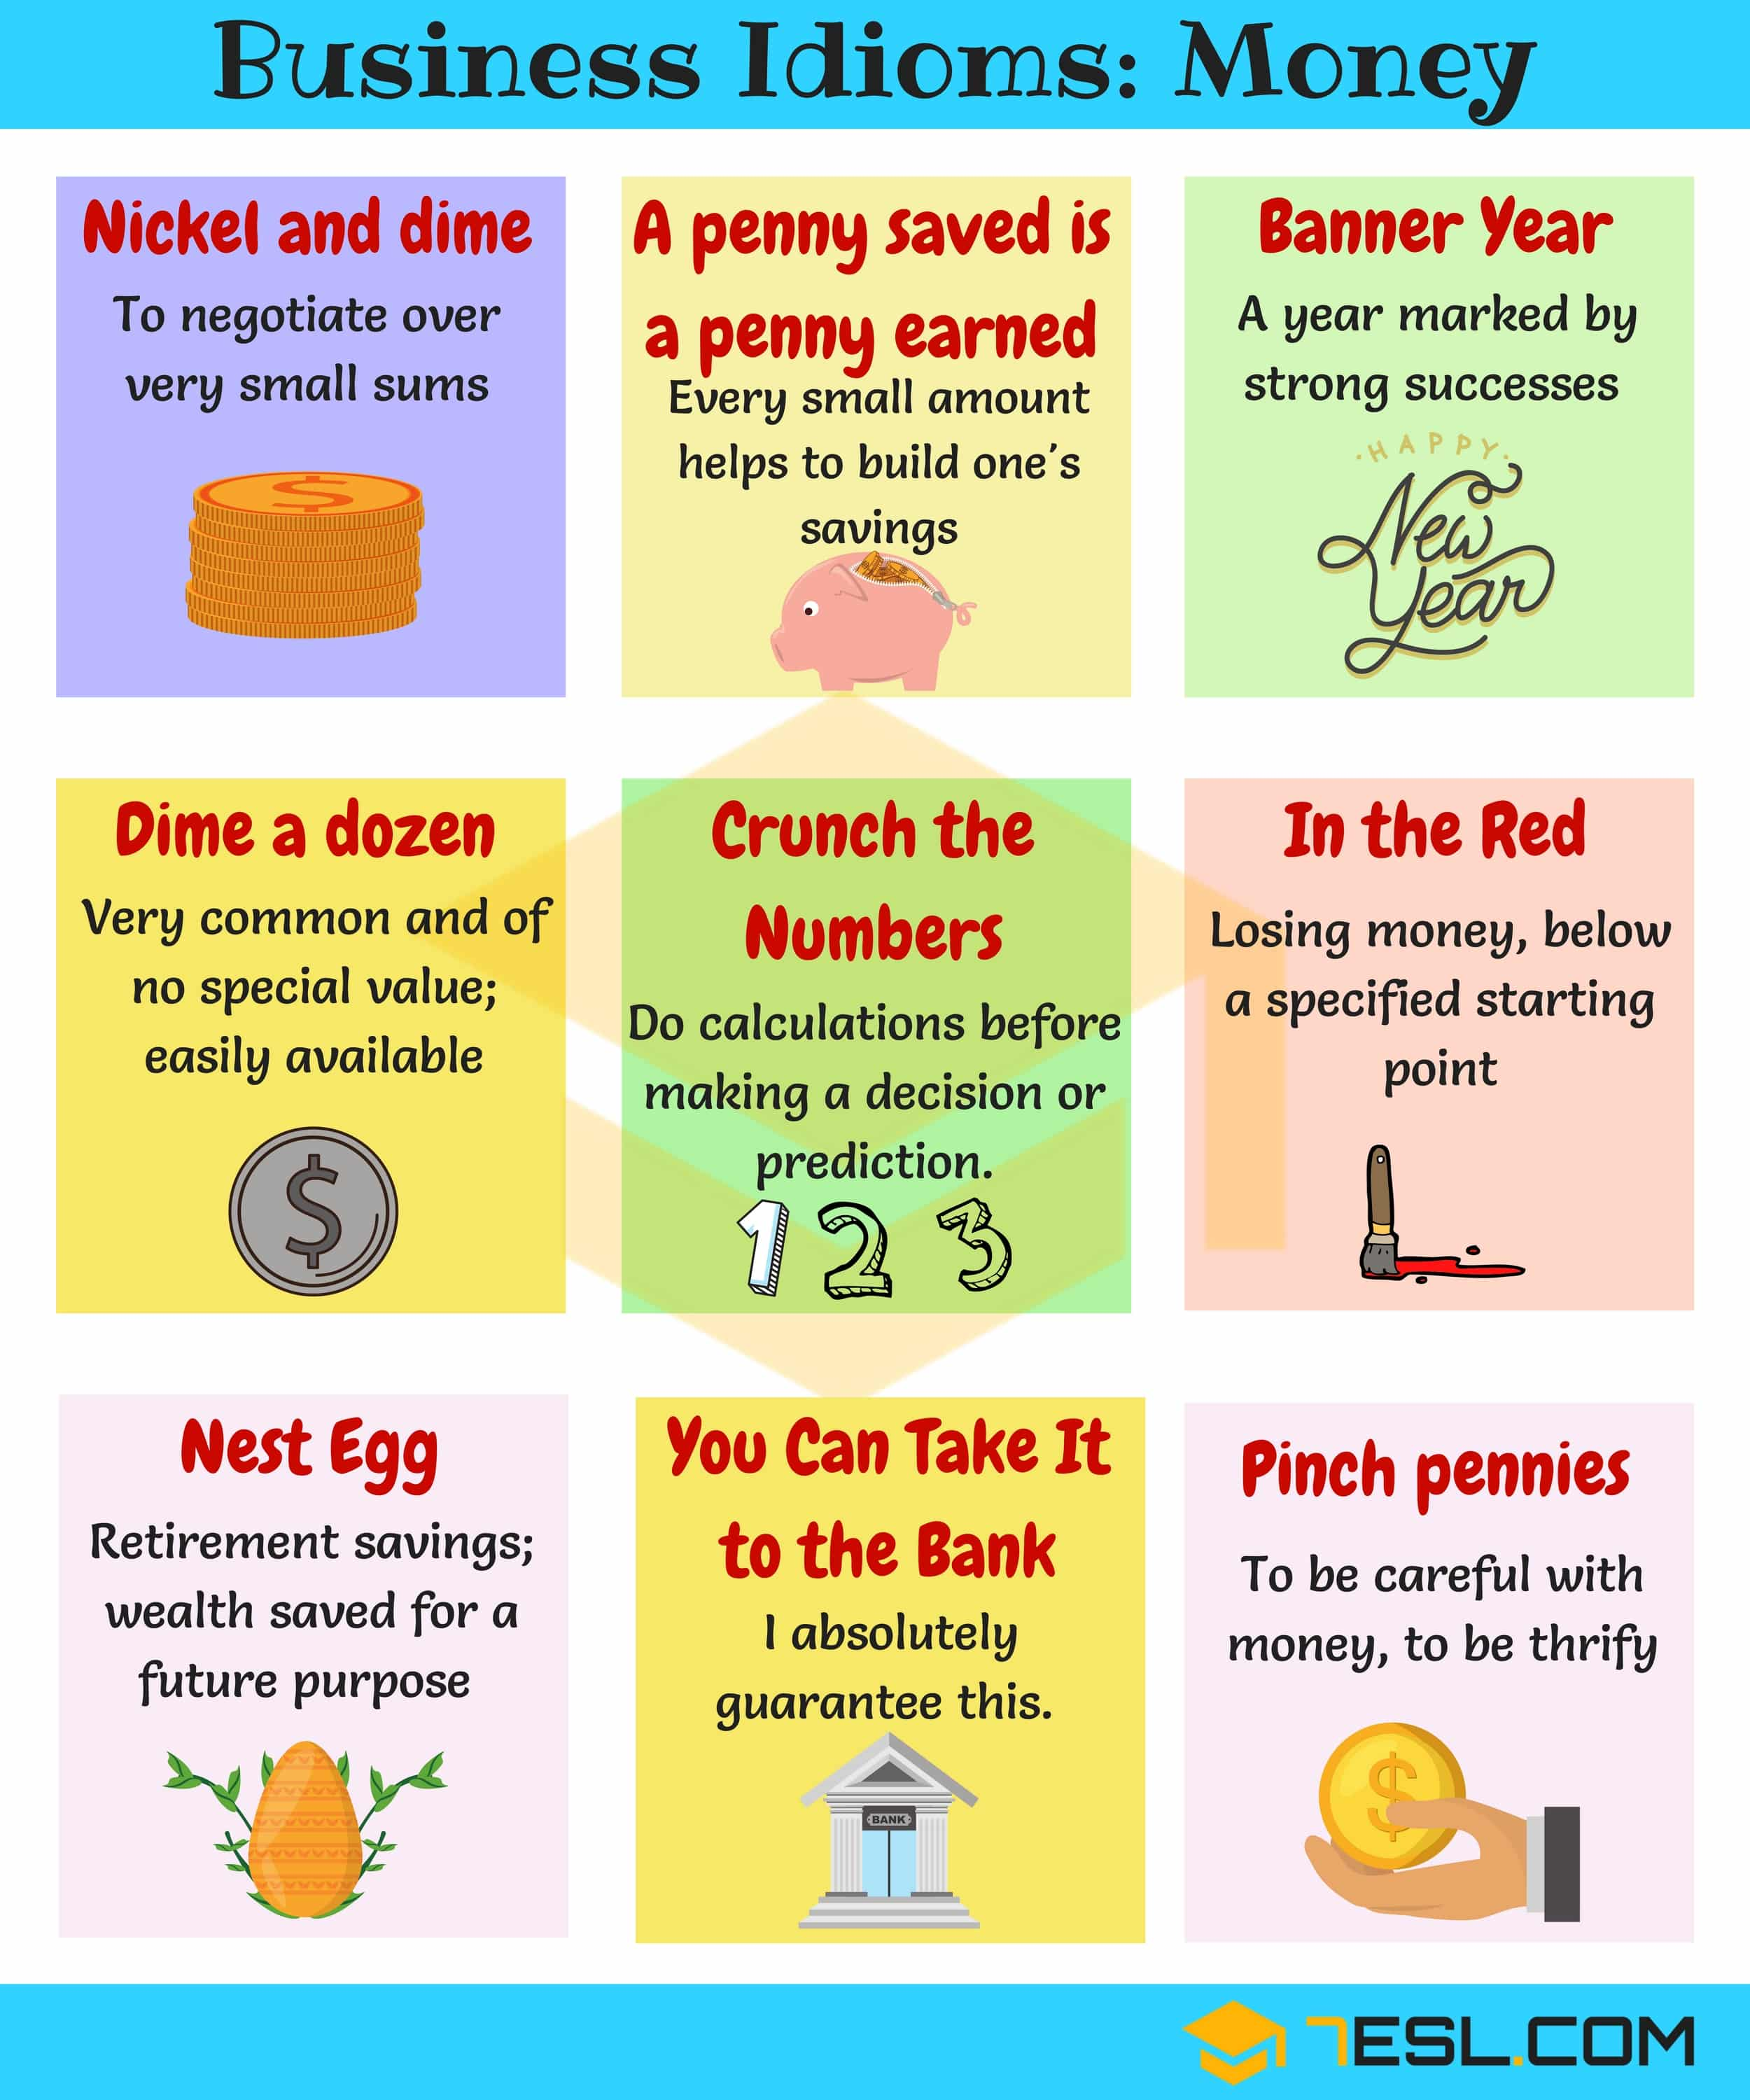 Useful Business Expressions and Idioms about Money | Business Idioms Image 3